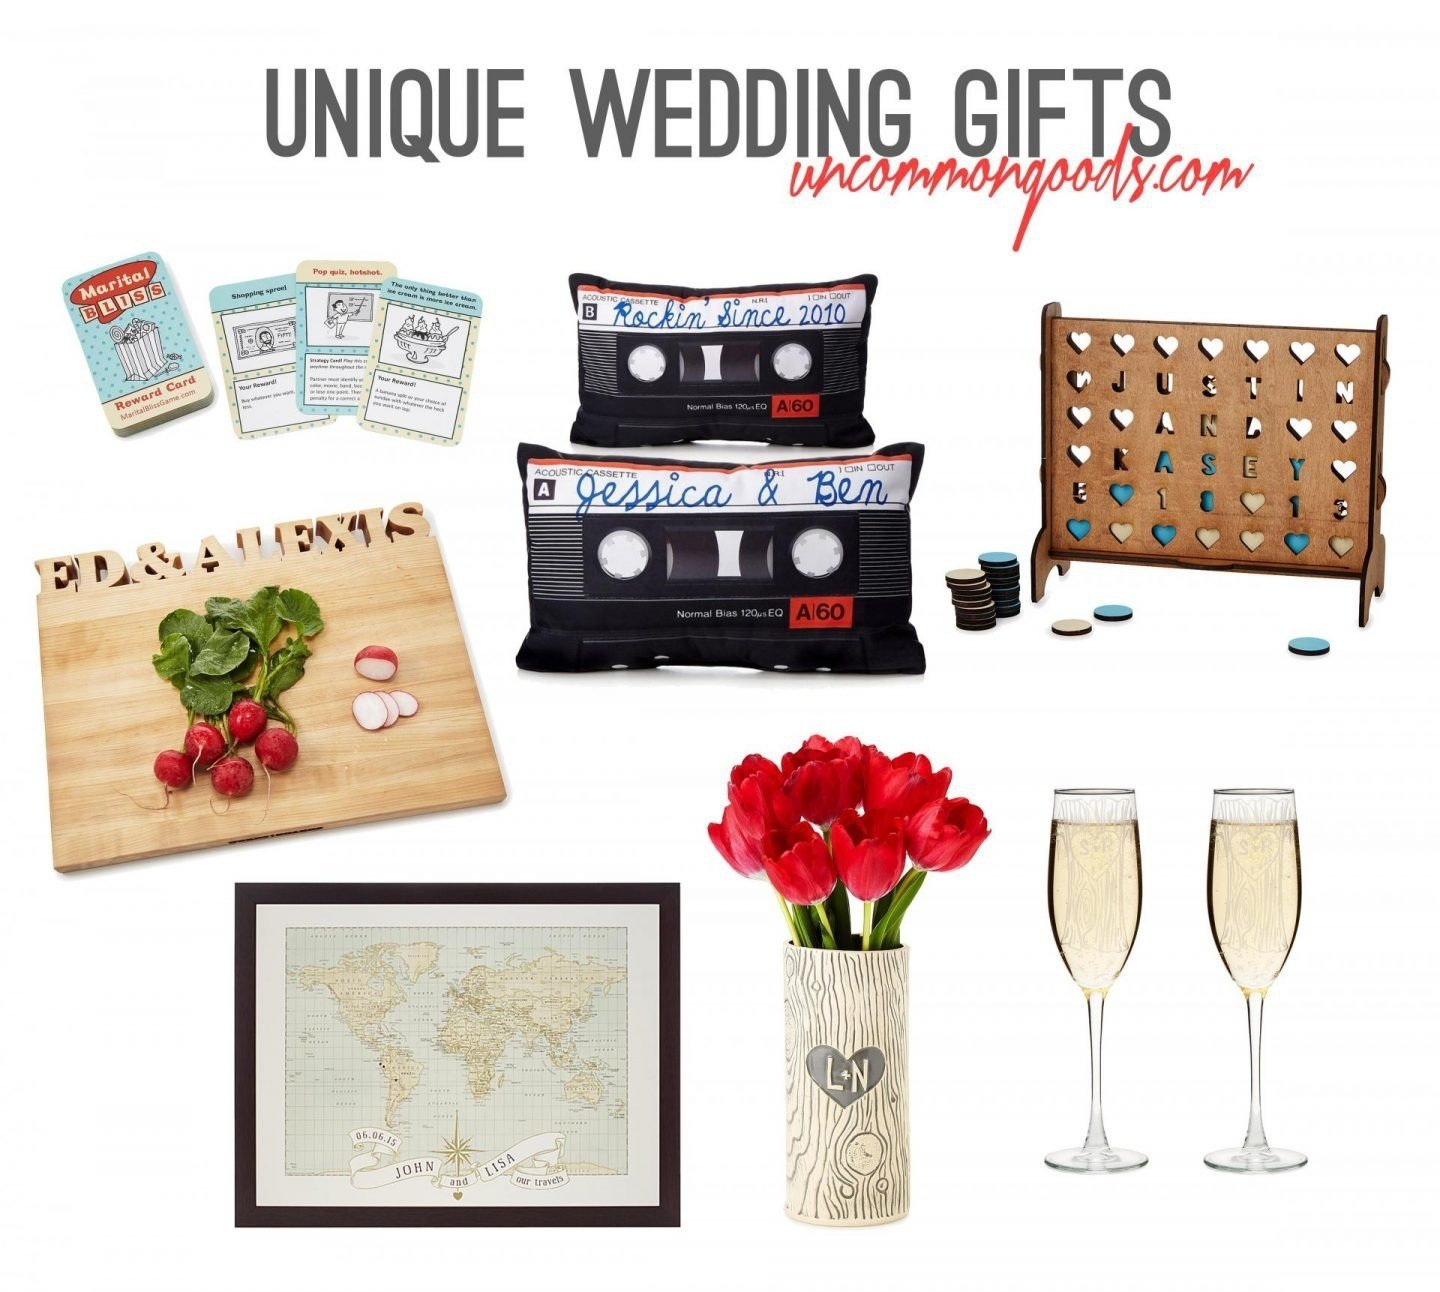 10 Stylish Wedding Gift Ideas For Second Marriage ideas o wedding facebook second marriage gifts bridal shower 2020